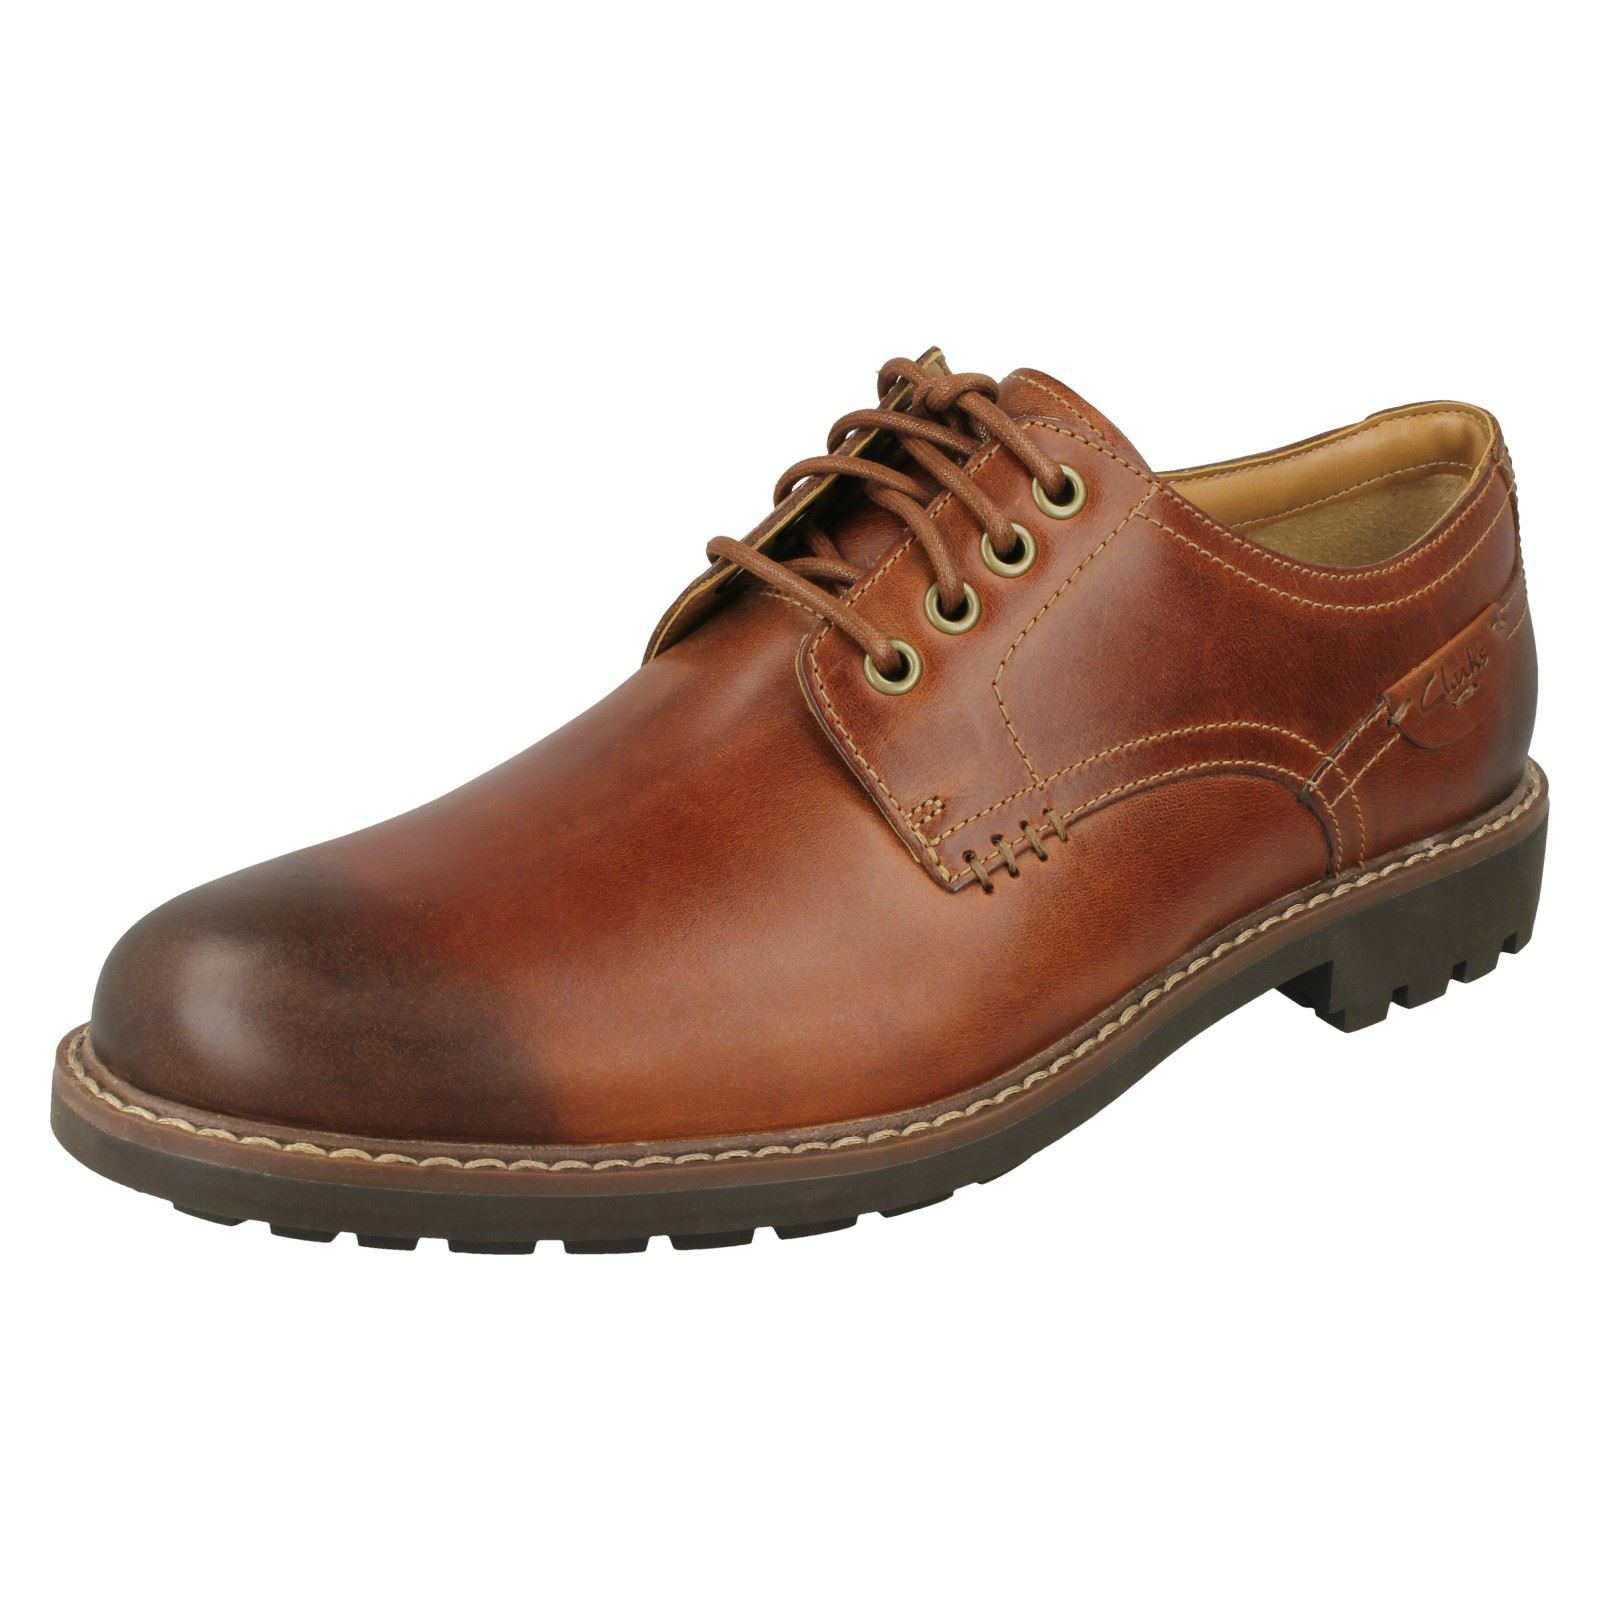 Mens-Clarks-Formal-Lace-Up-Shoes-Montacute-Hall